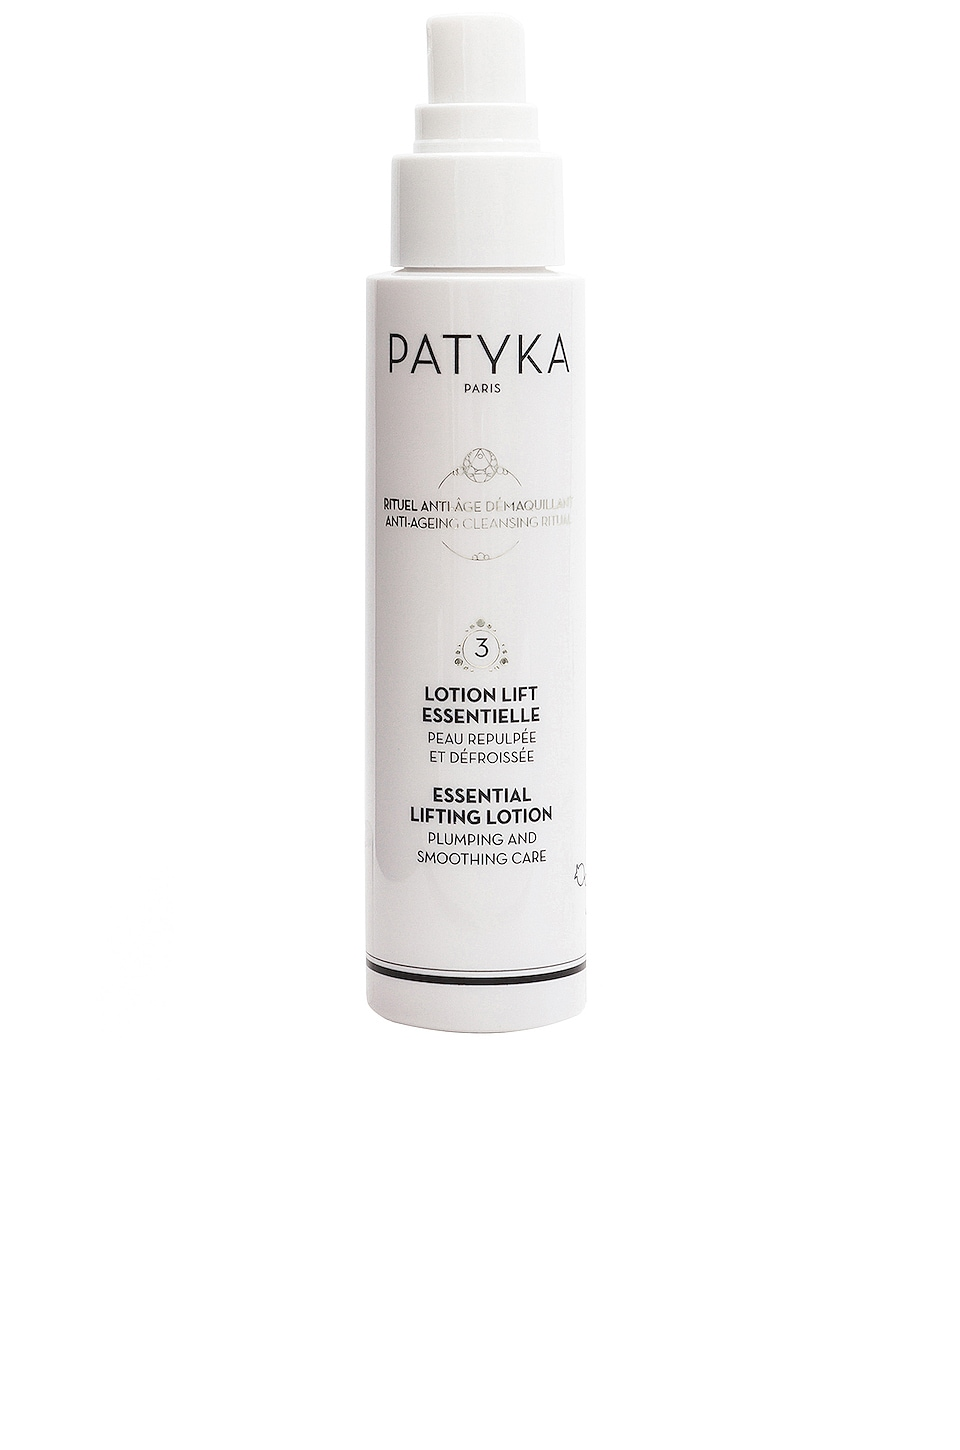 PATYKA Essential Lifting Lotion in Beauty: Na